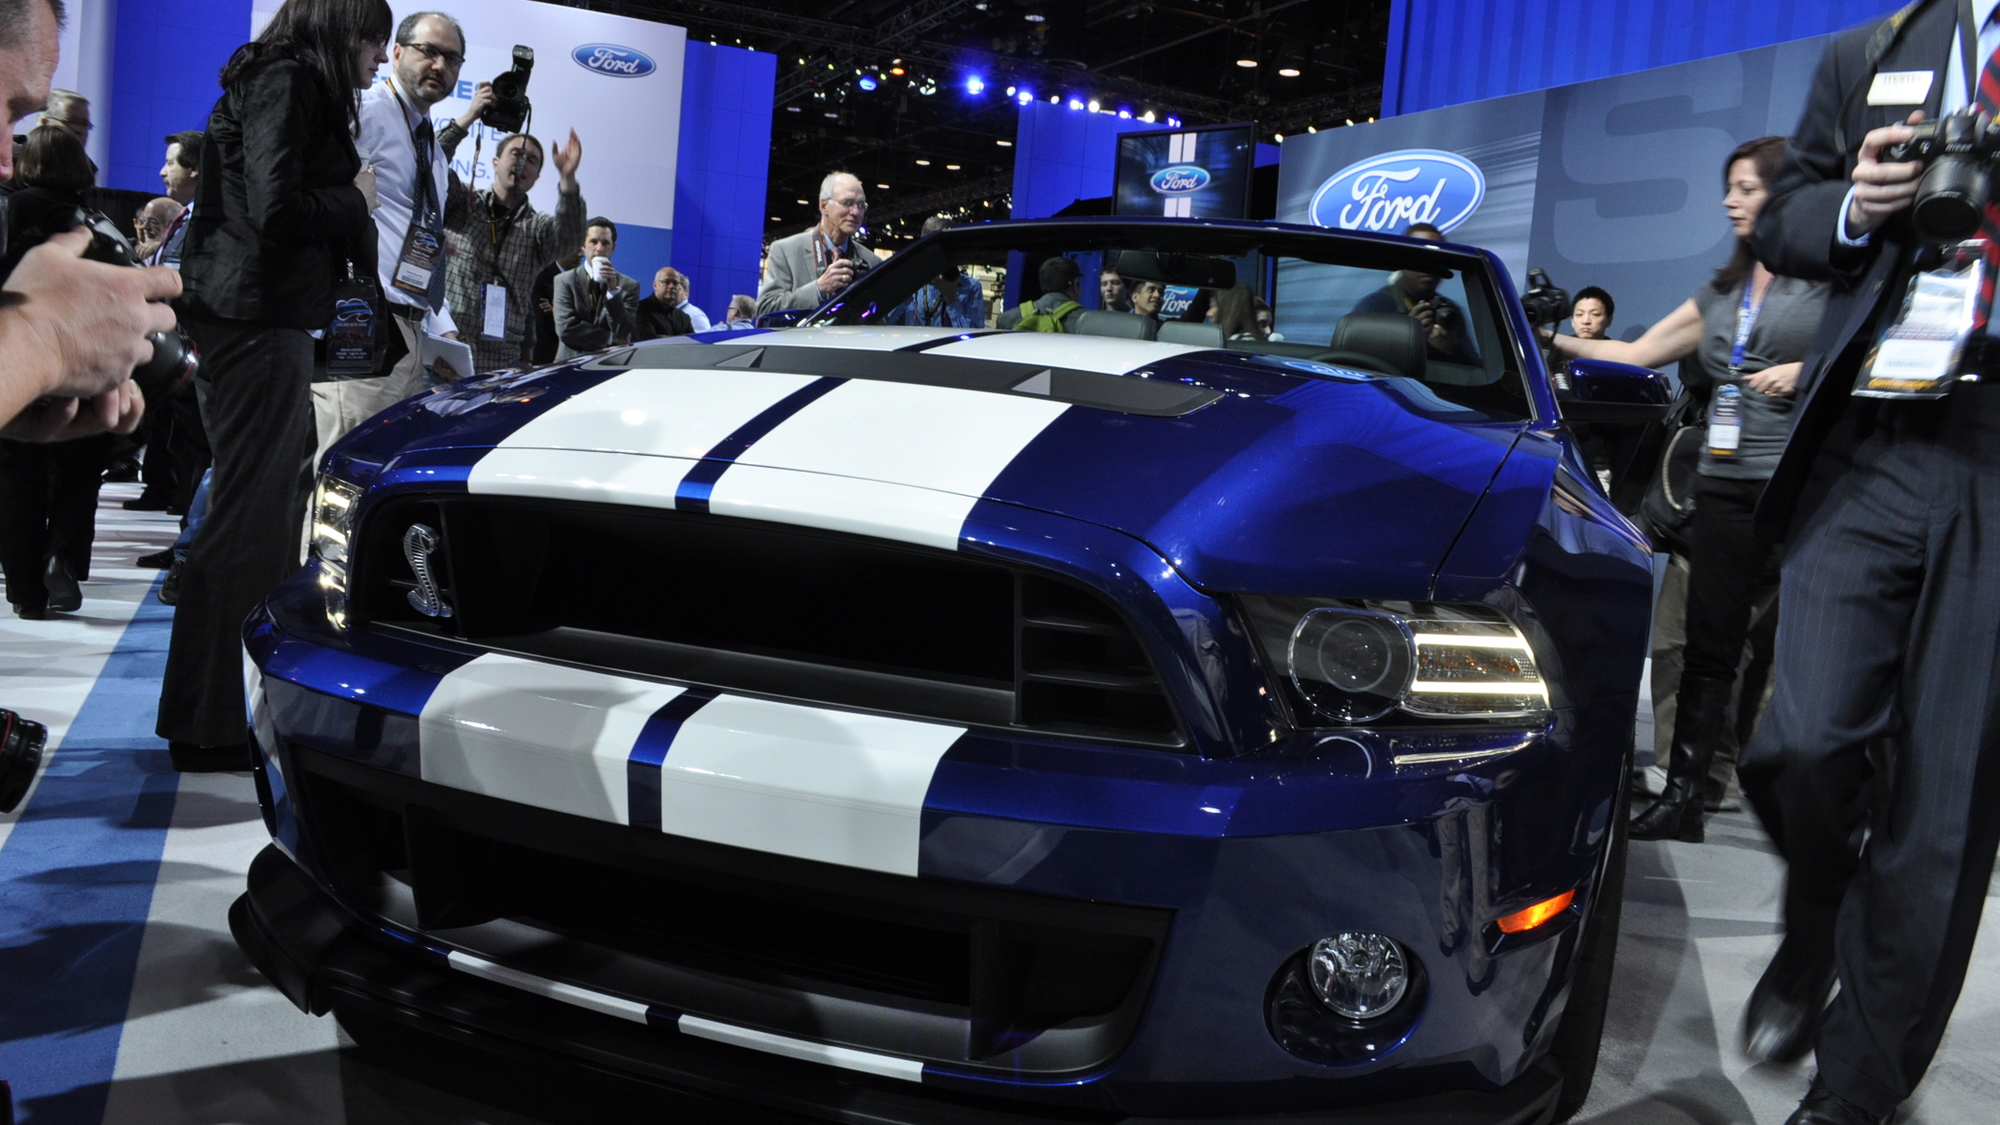 2013 Ford Mustang Shelby GT500 Convertible